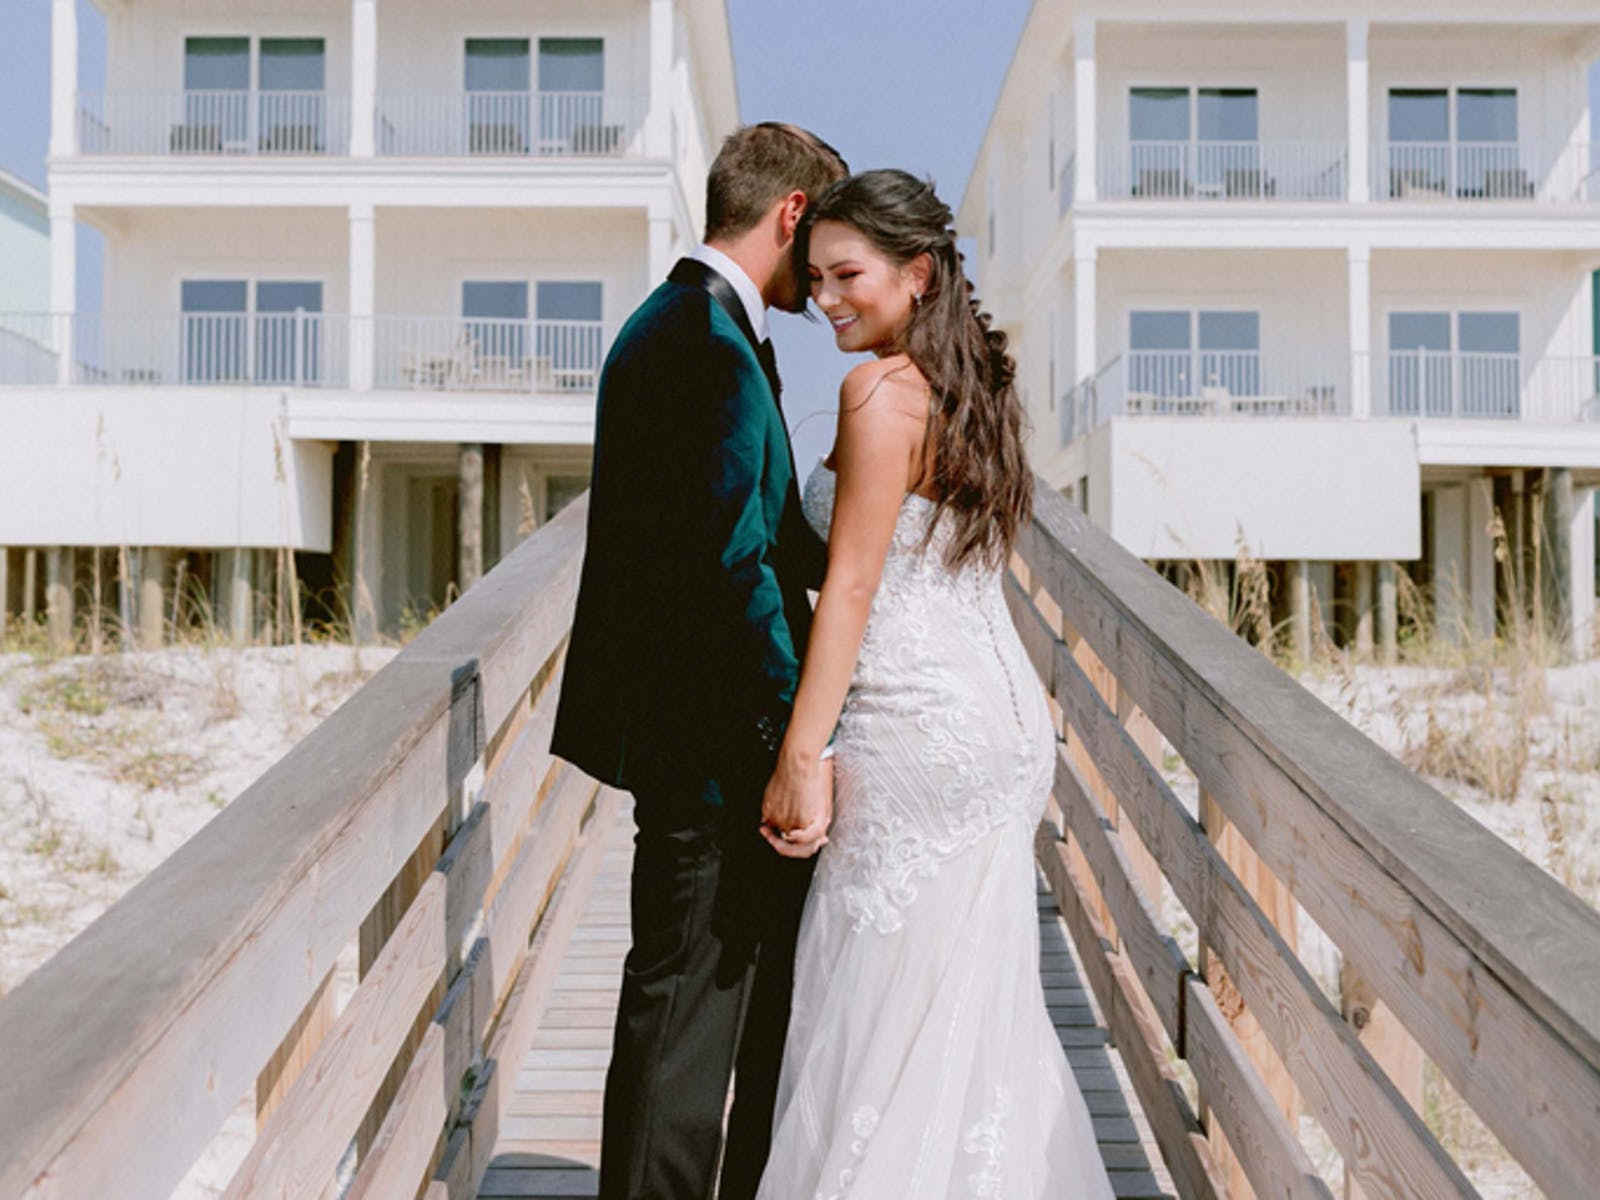 Wedding photo taken on the boardwalk to the beach at a vacation rental